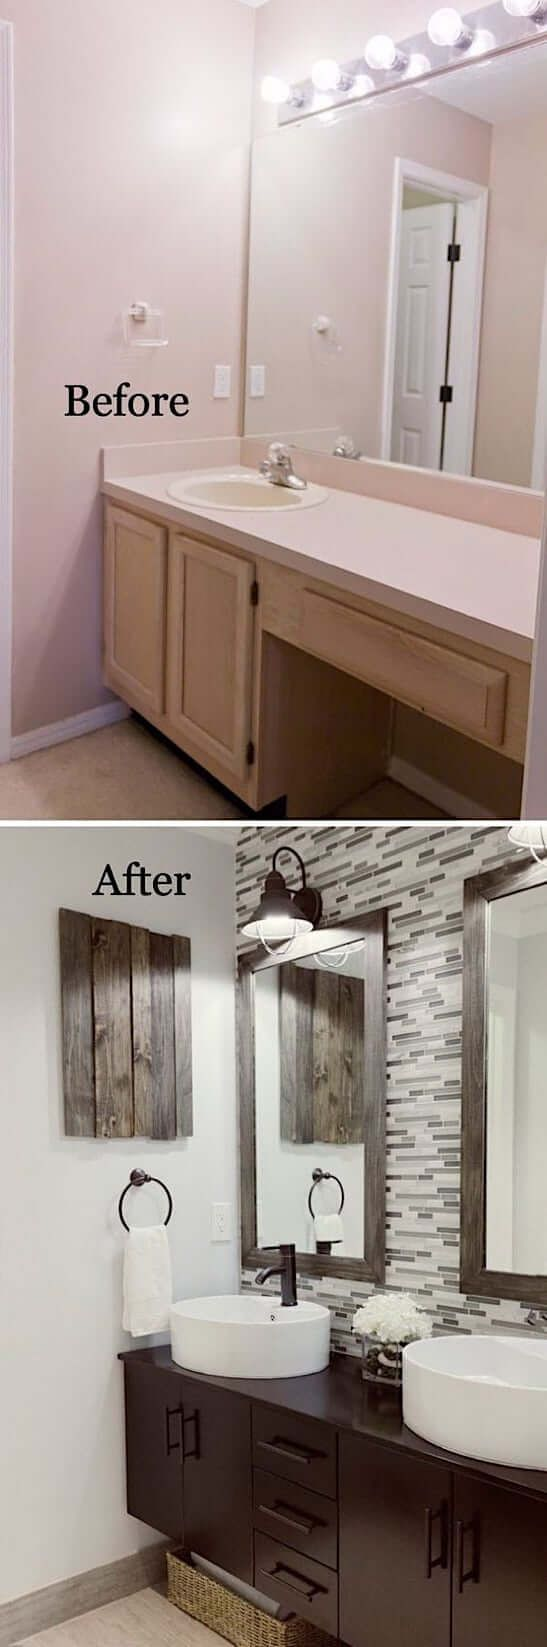 Best 25 large bathroom mirrors ideas on pinterest large - Diy bathroom remodel before and after ...